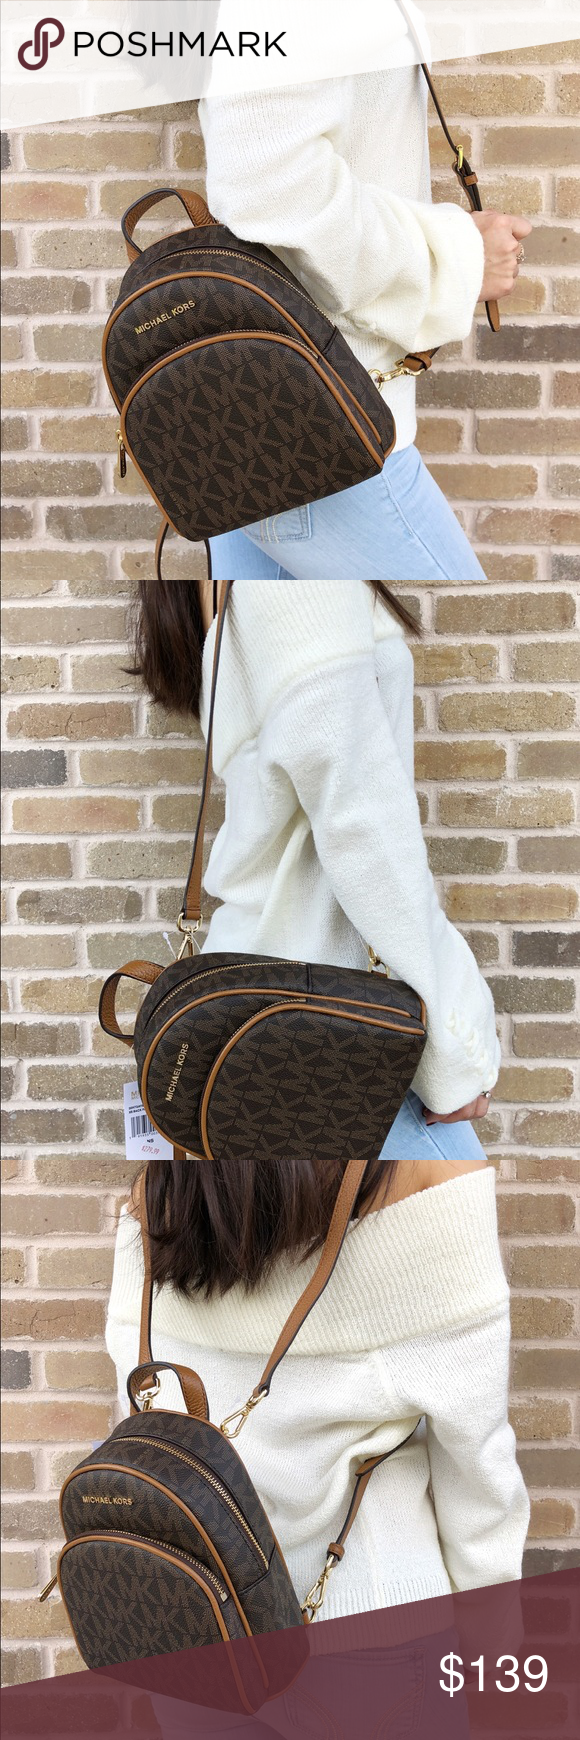 Michael Kors Abbey Mini BackpackBrown Extra Small Michael Kors Abbey Mini  Backpack Crossbody Brown MK Signature Acorn Extra Small Color  Brown ... 837a4feab90f9